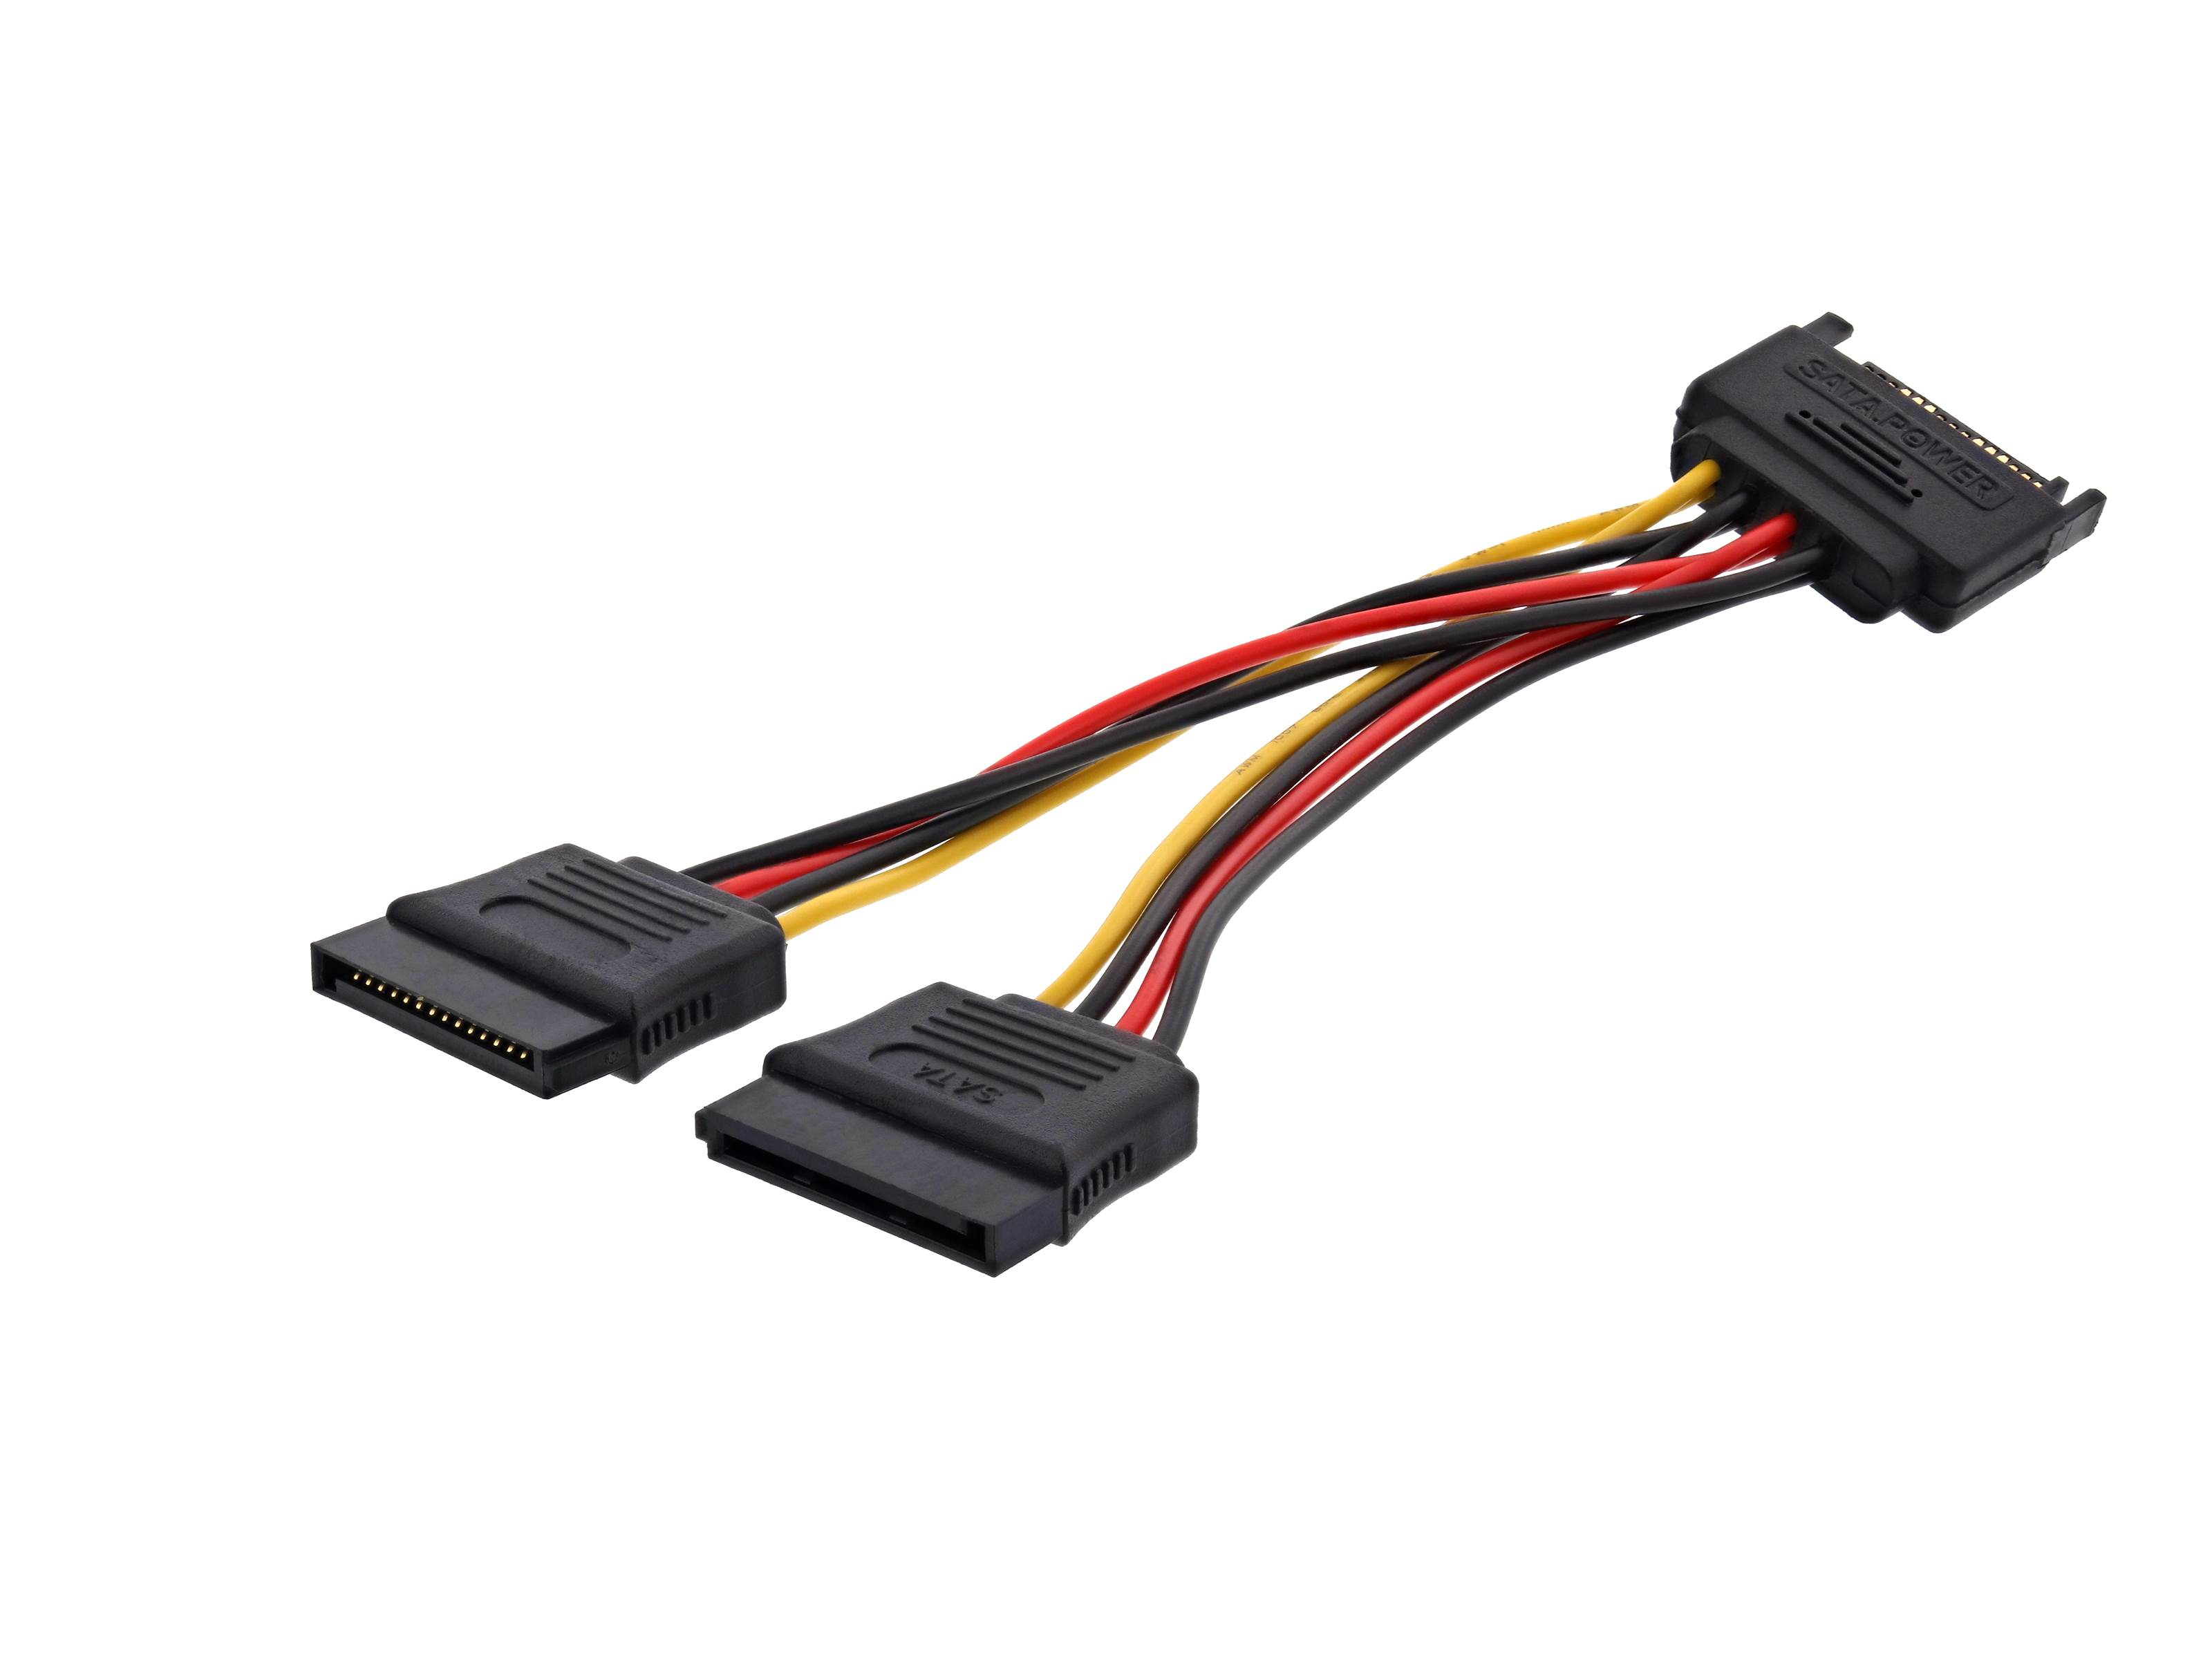 6 Inch Serial Ata Power Y Cable Computer Cable Store